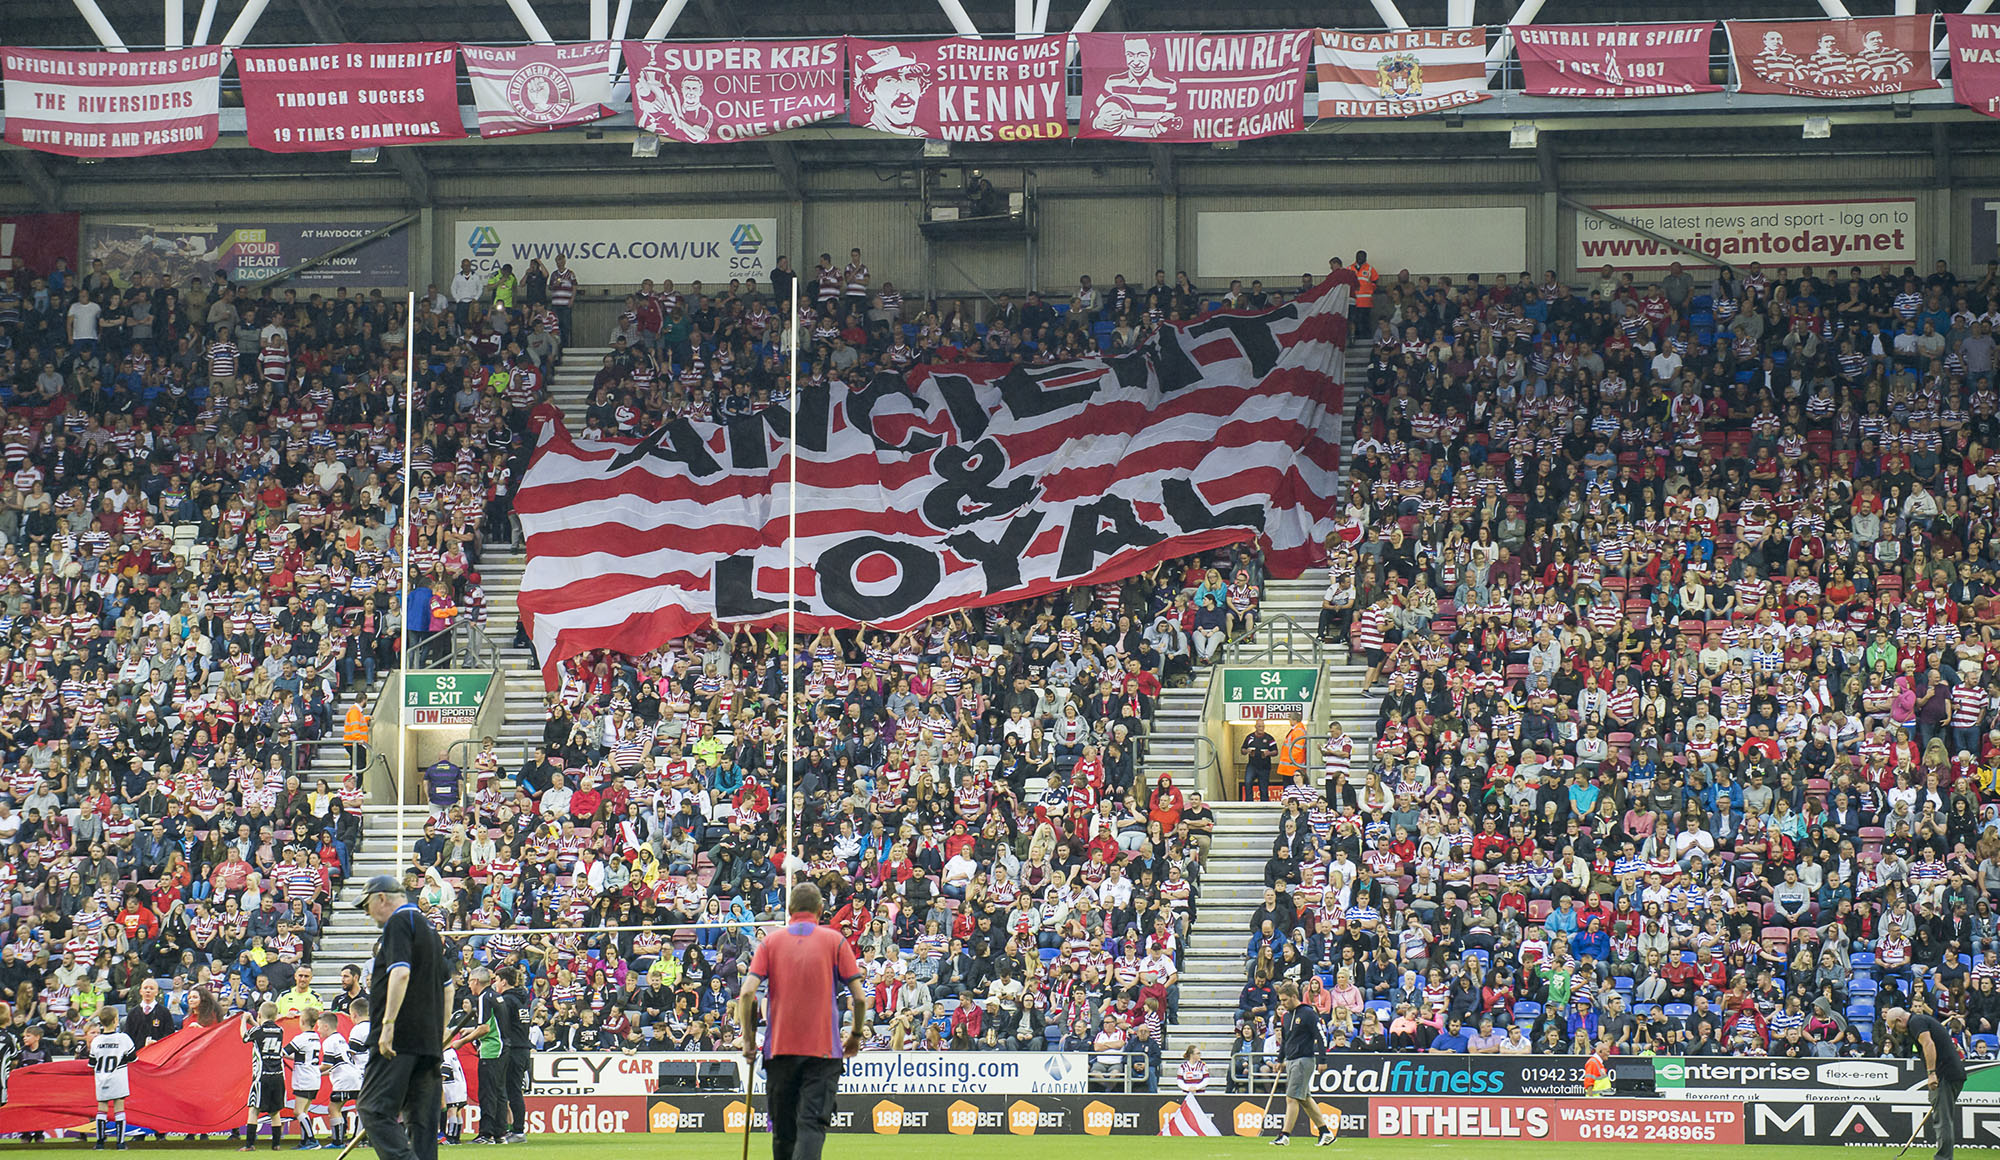 South Stand DW Stadium Wigan fans 2016